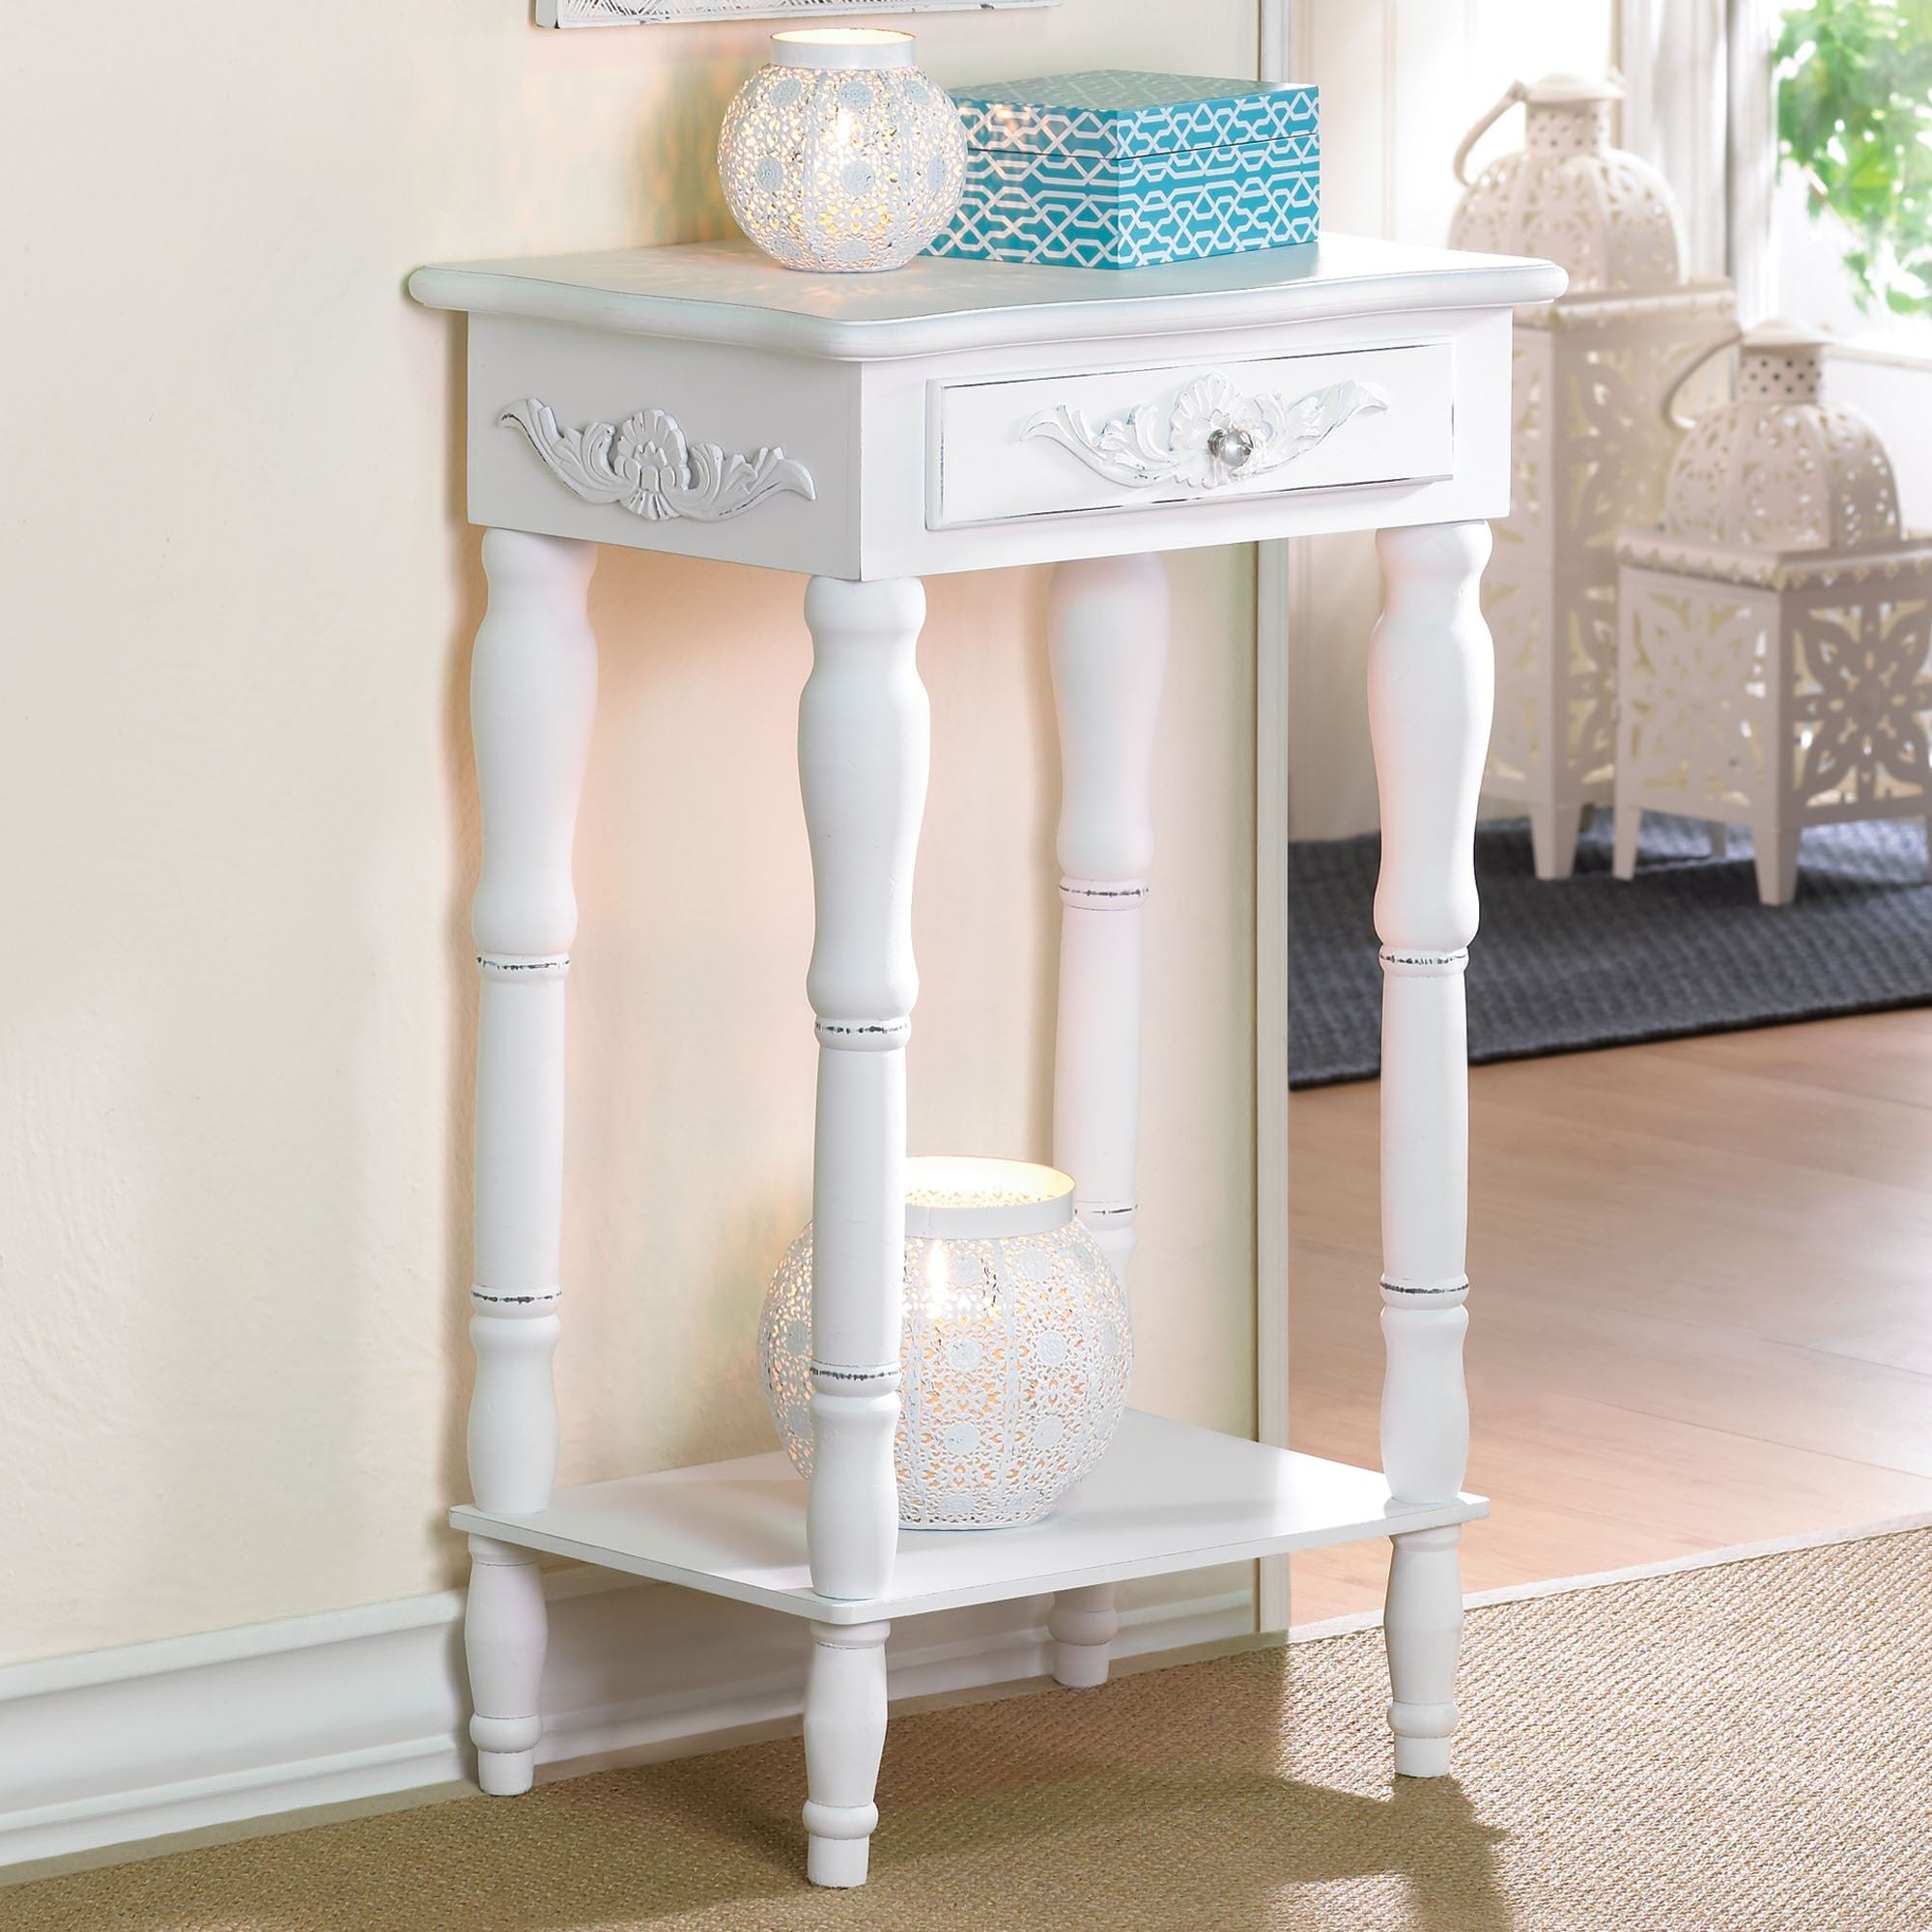 cosenza antique white accent table with drawer bathroom tables touch zoom piece patio dining sets clearance threshold windham one door cabinet teal lighting redmond weathered wood